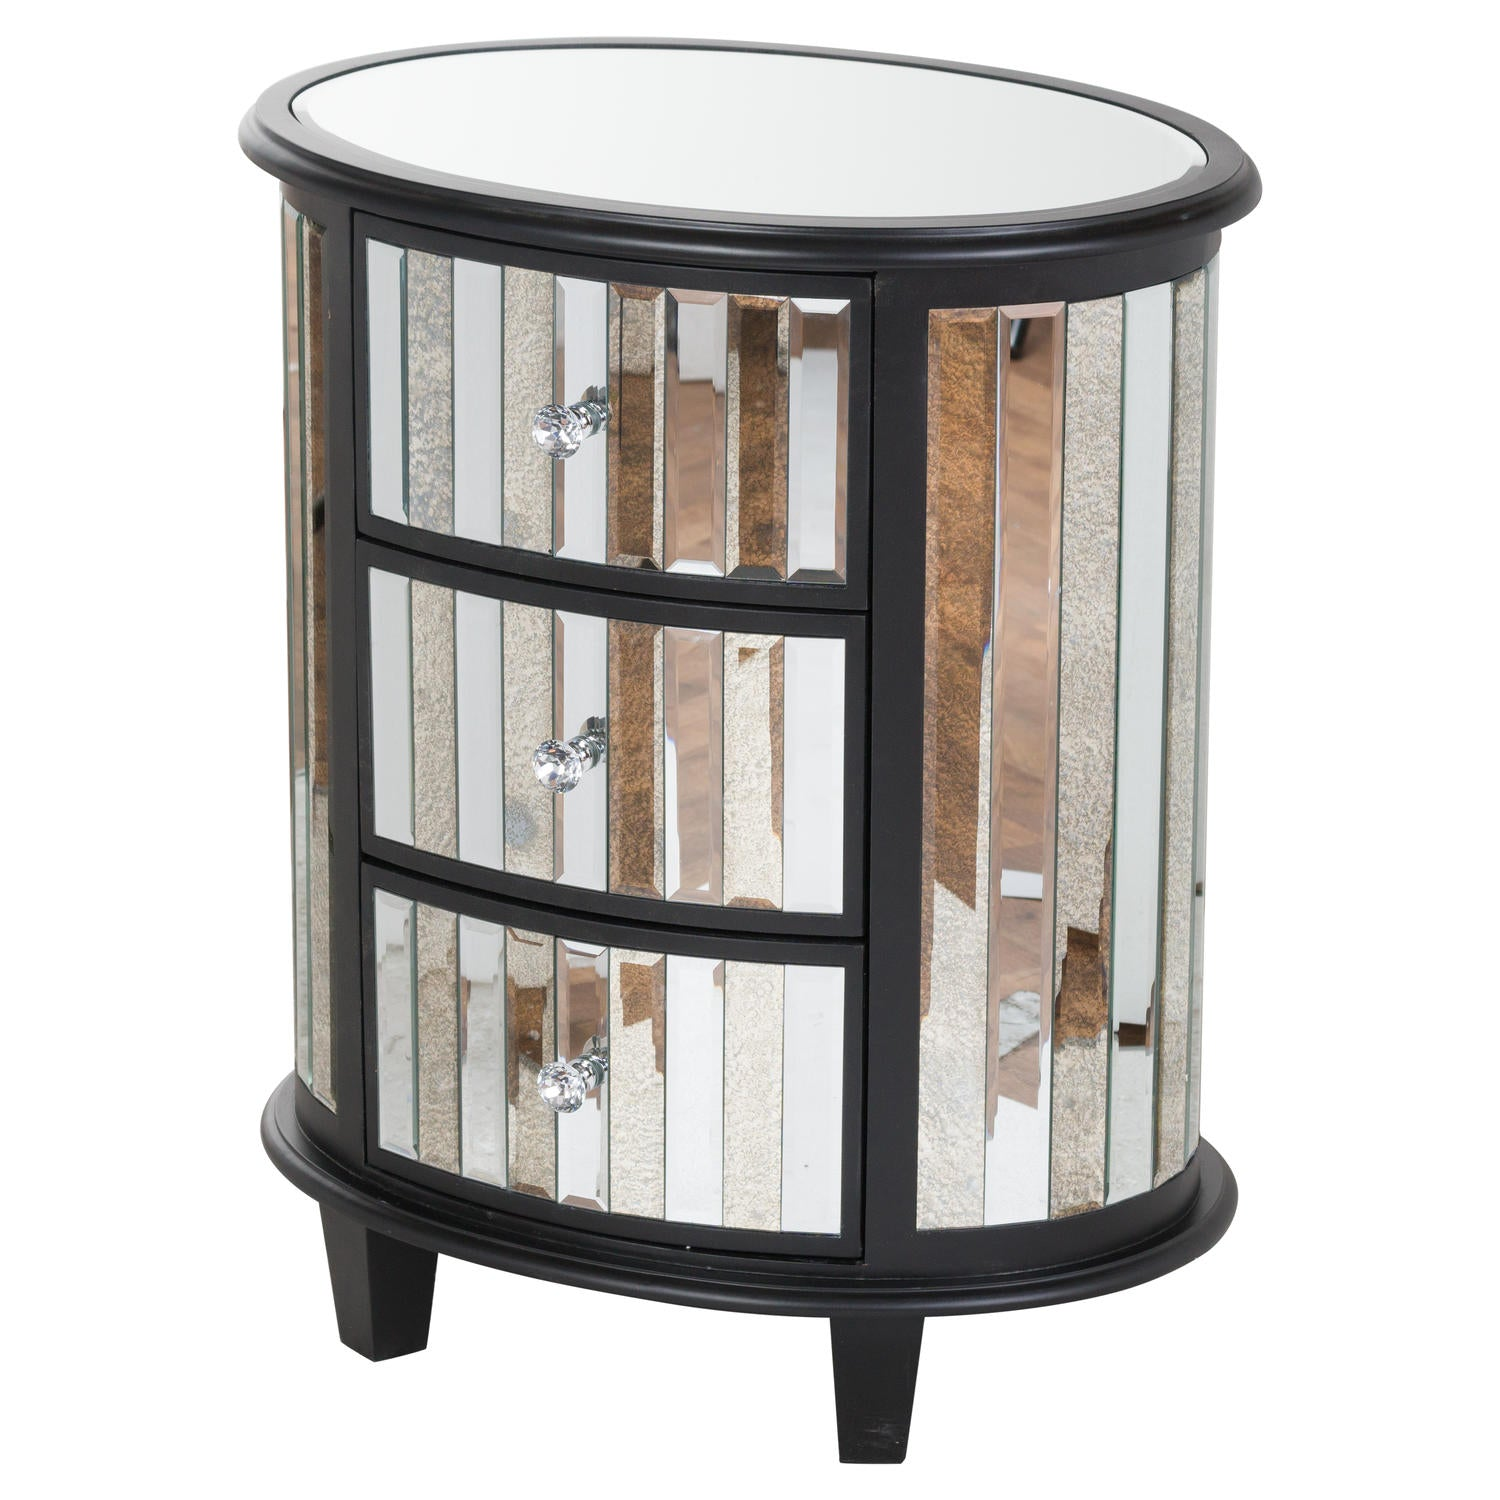 The Soho Black Mirror Collection Oval 3 Drawer Unit